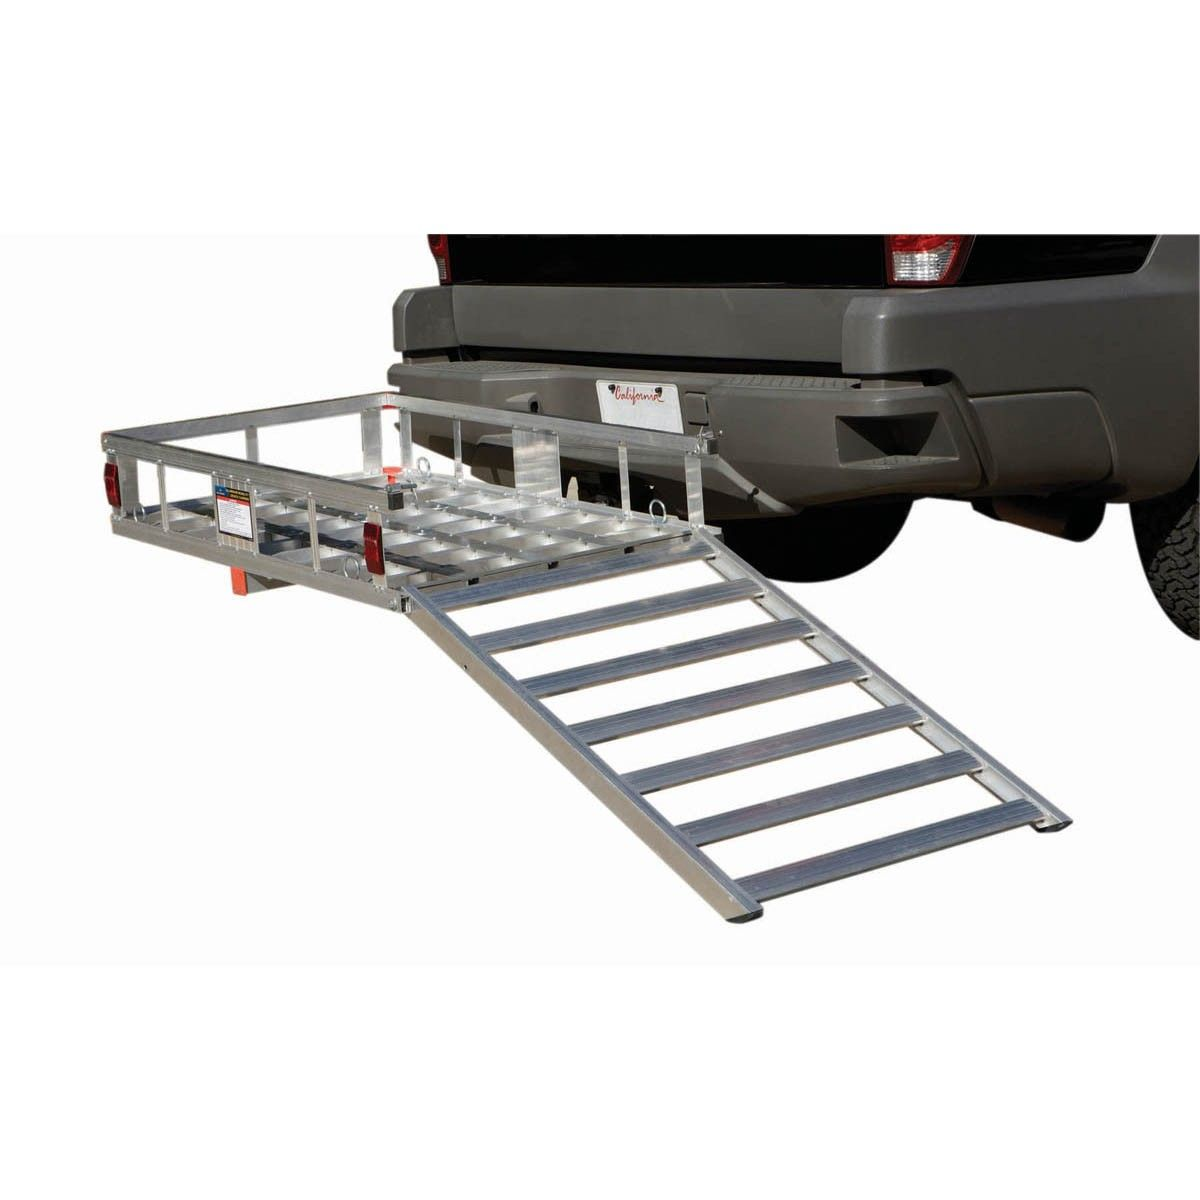 hight resolution of haul master 67599 500 lb aluminum mobility wheelchair and scooter carrier